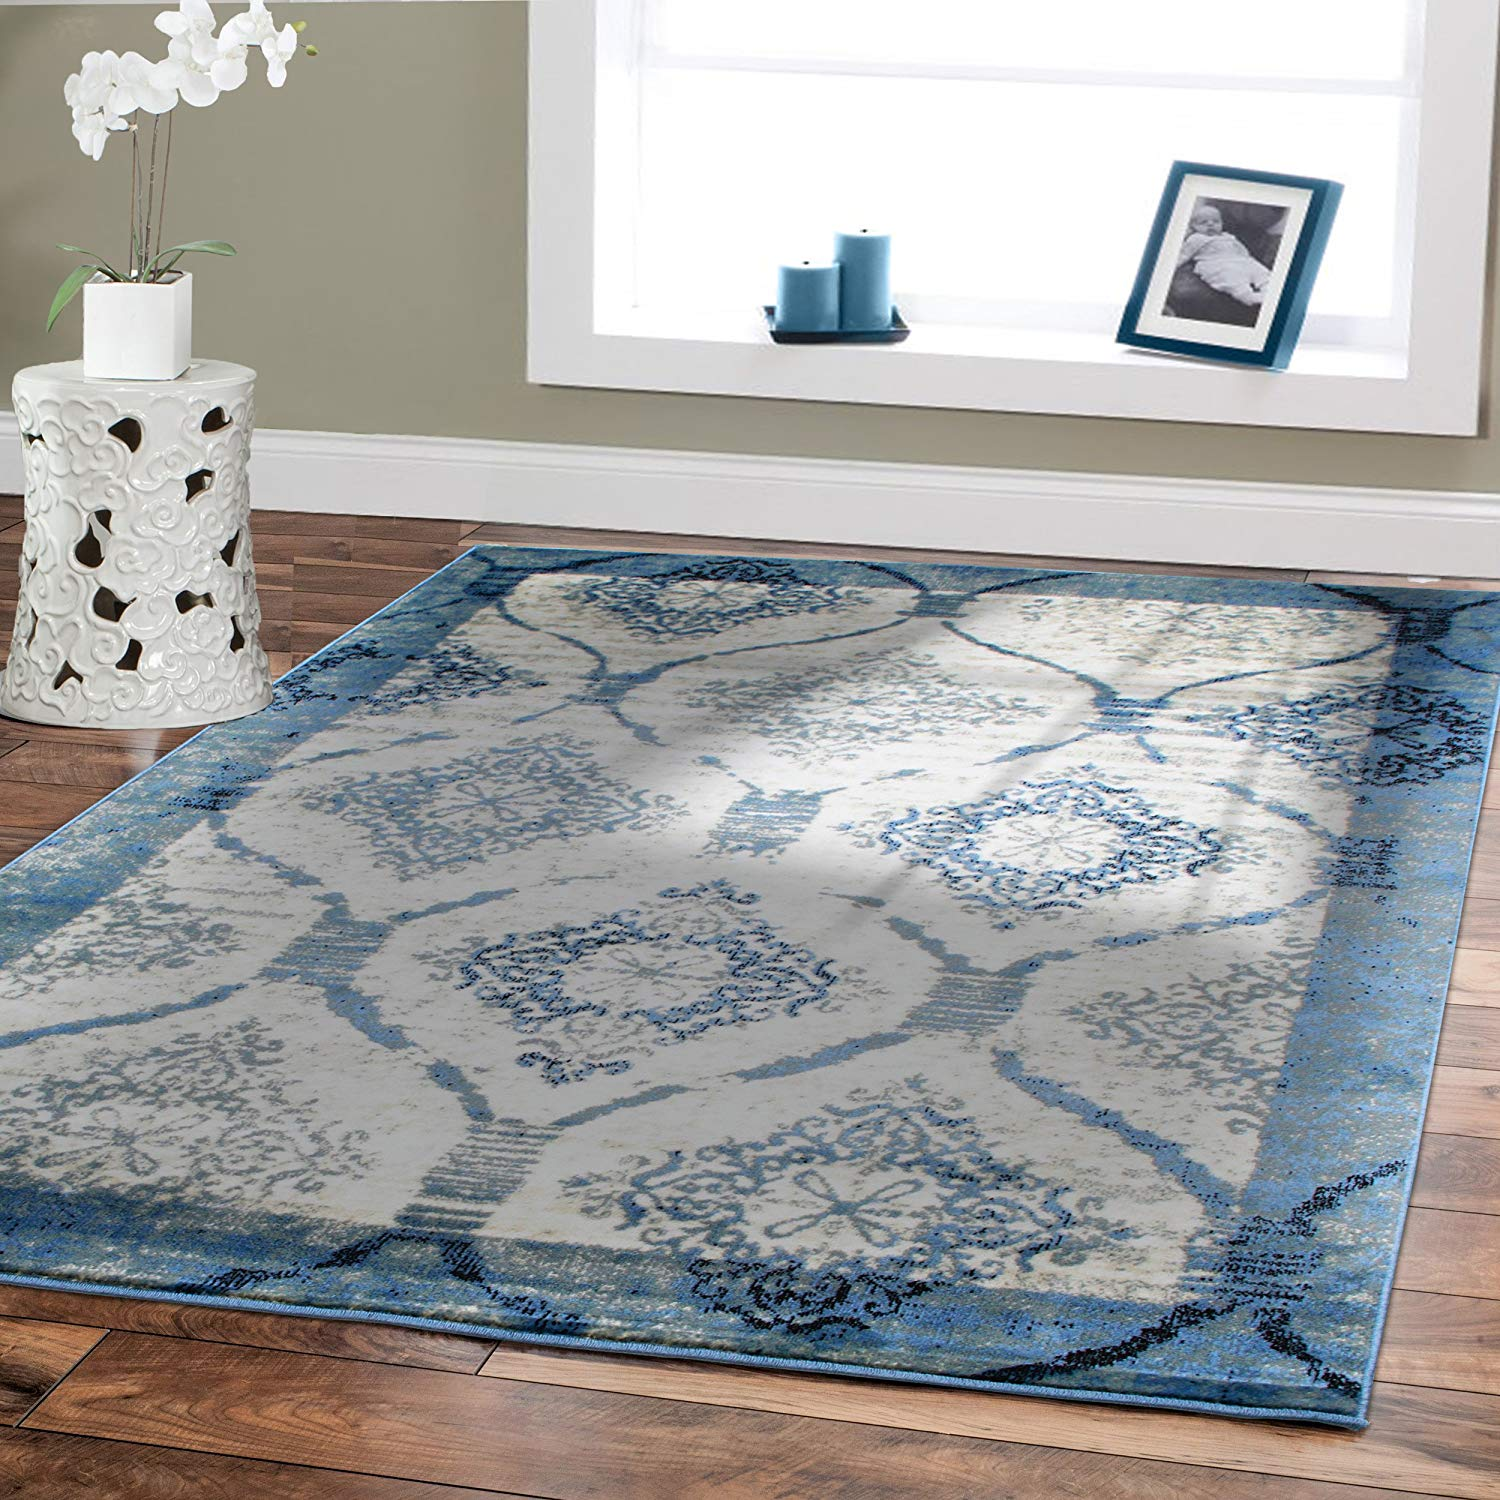 amazon.com: contemporary rugs for living room 5x8 blue area rug modern rugs OXXFPPF